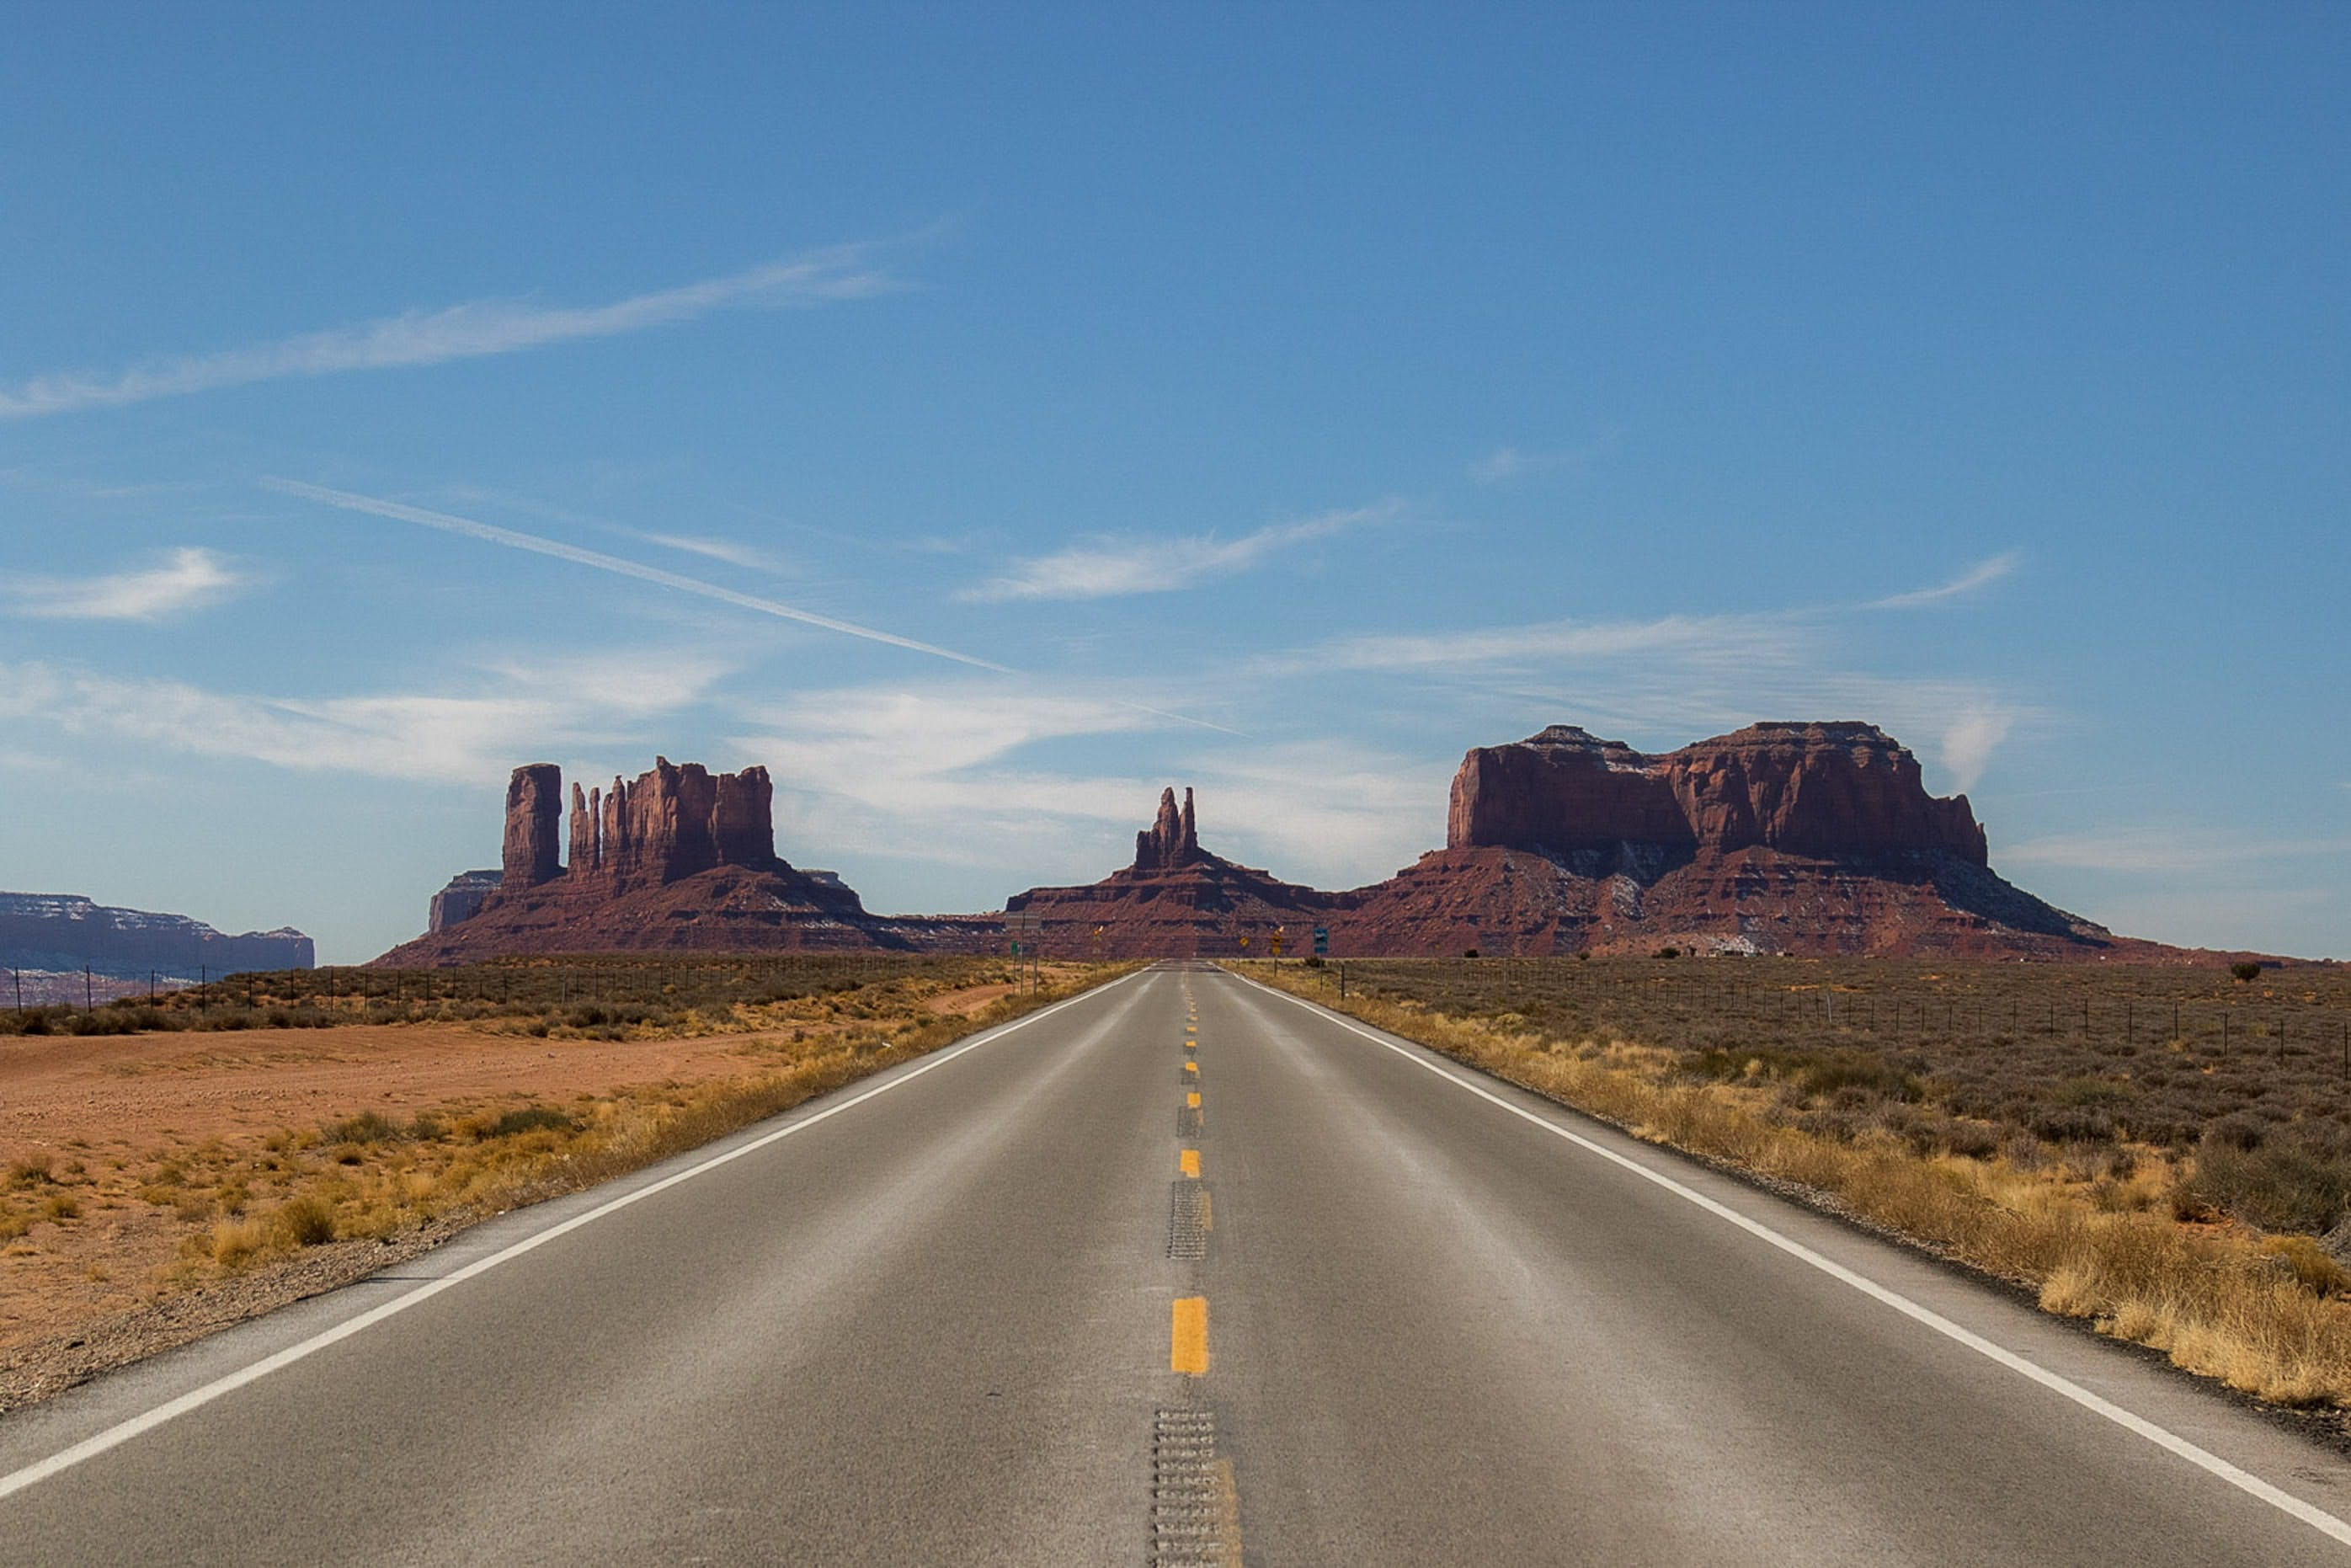 Good Morning America: RV rentals boom as Americans seek out new travel options amid pandemic